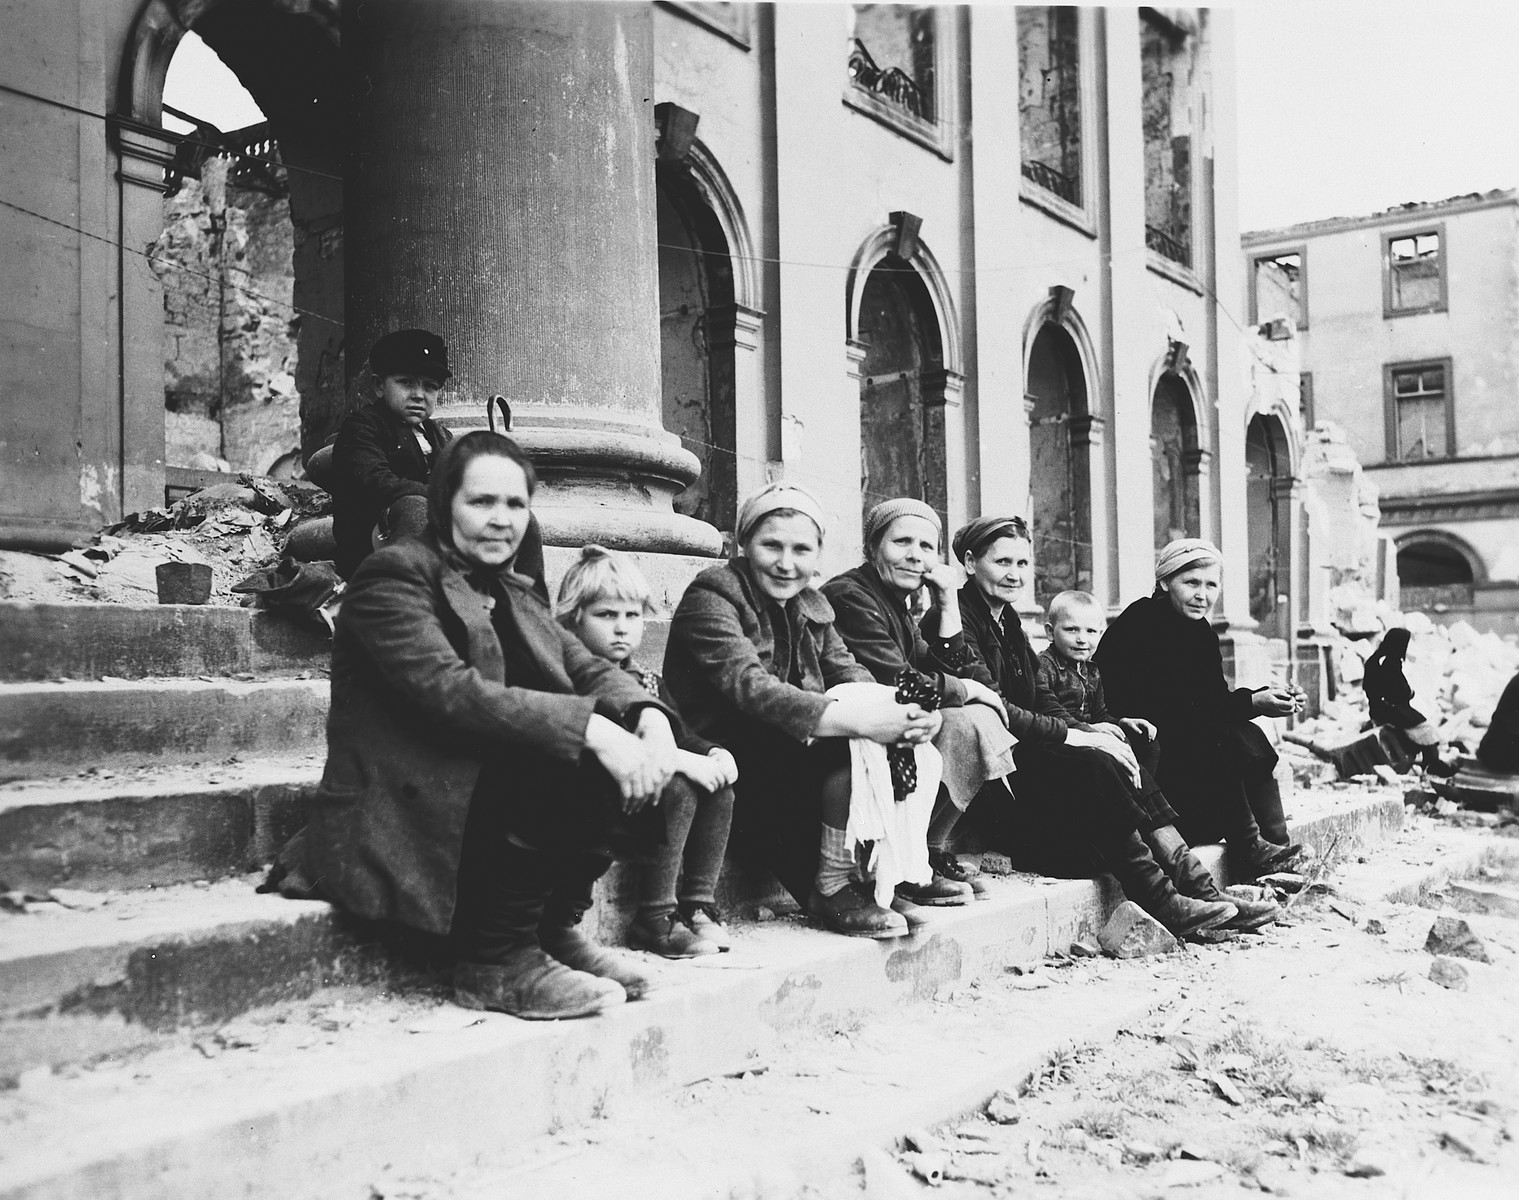 German civilian women and children sit on the steps of a largely destroyed, bomb-damaged building.